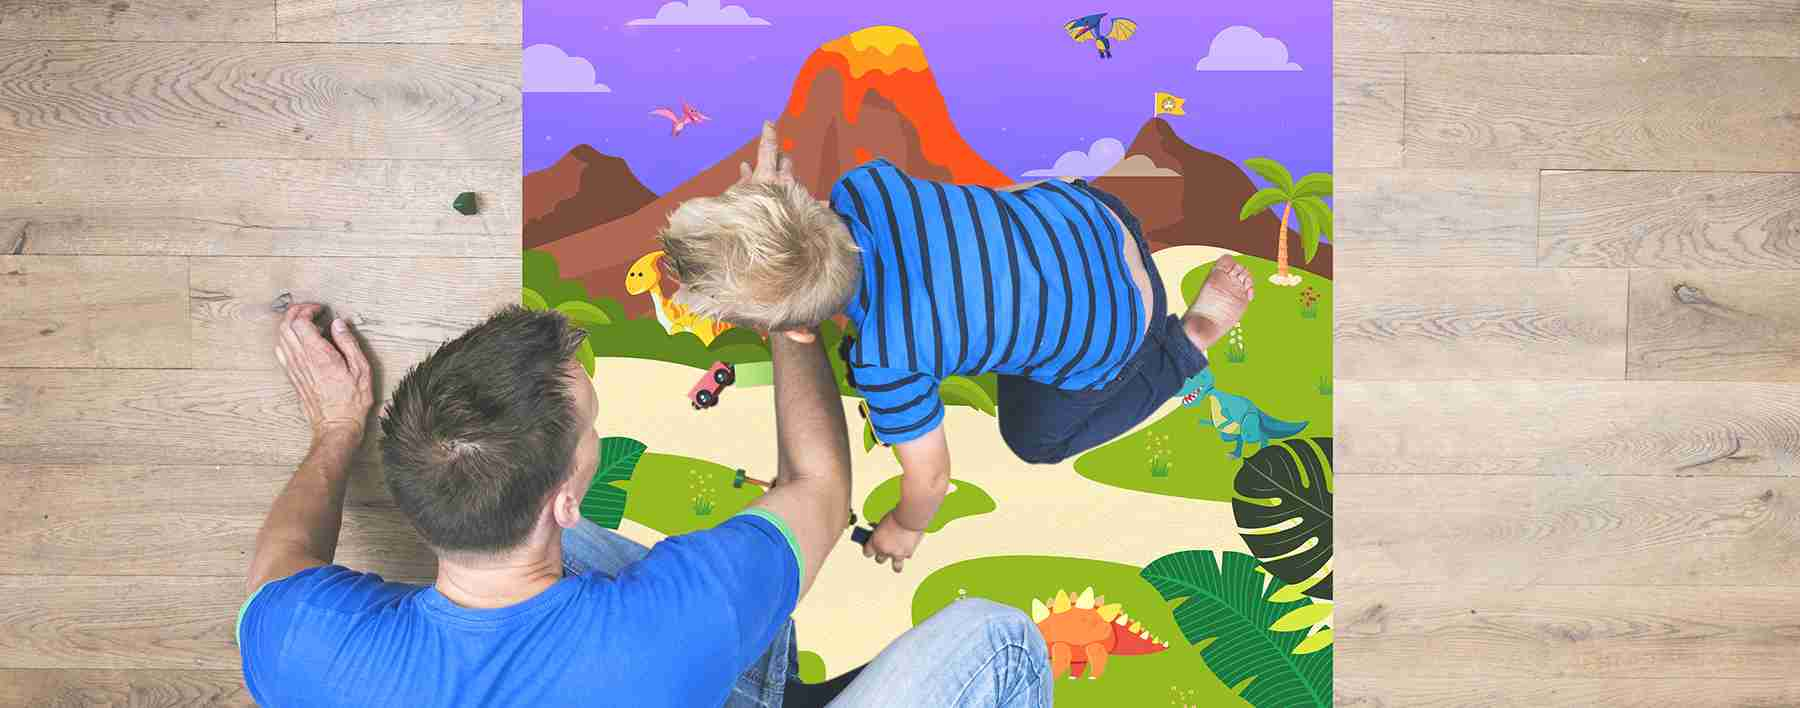 Volcano Island Playmat With Parent And Child Playing